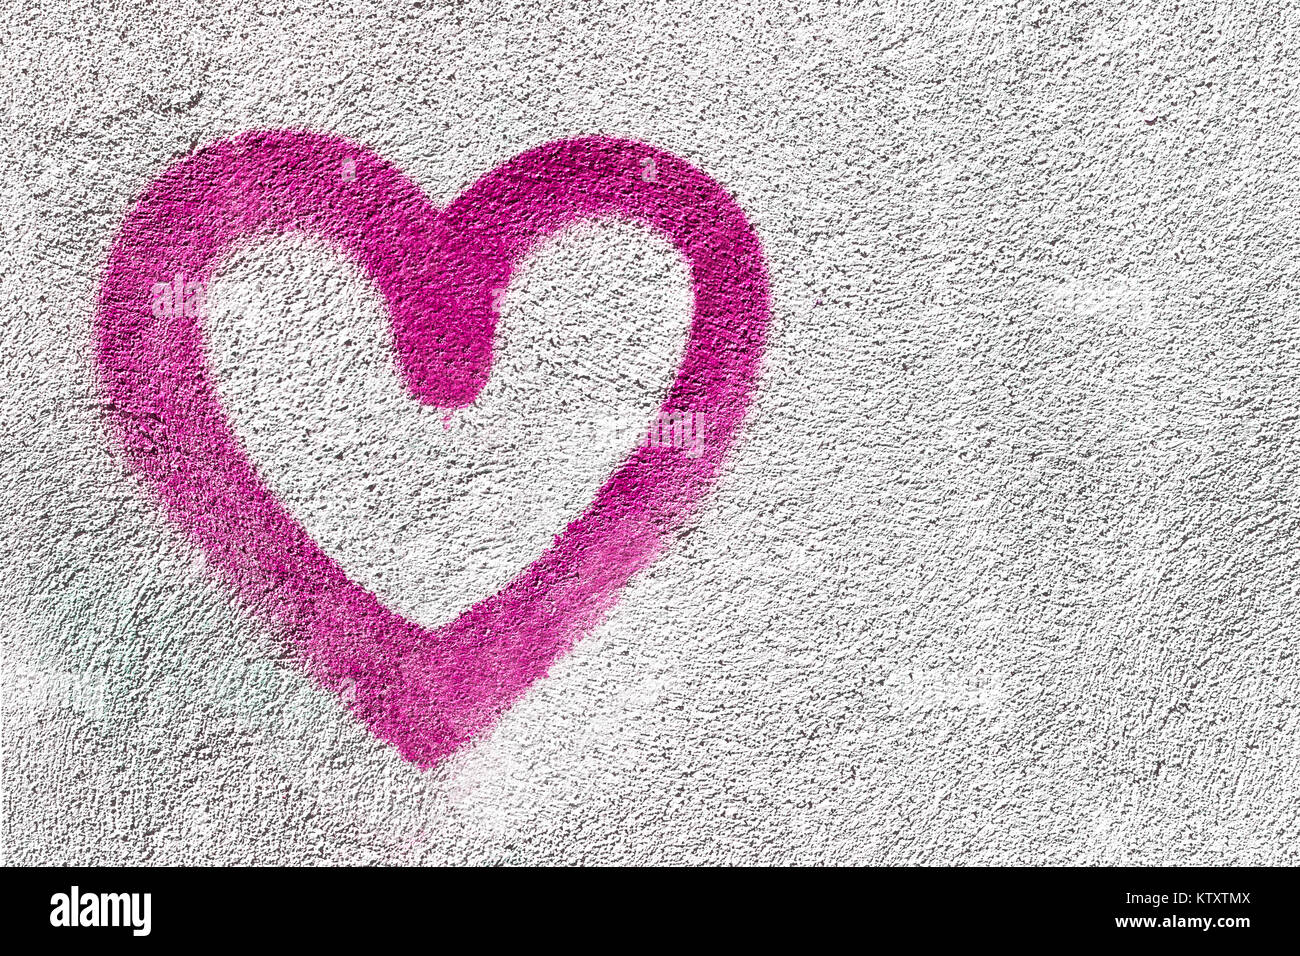 Pink Heart Shaped On Wall Background Symbol Of Love Rustic It Can Be Used As A Valentines Theme Poster Wallpaper Design T Shirts And Mor